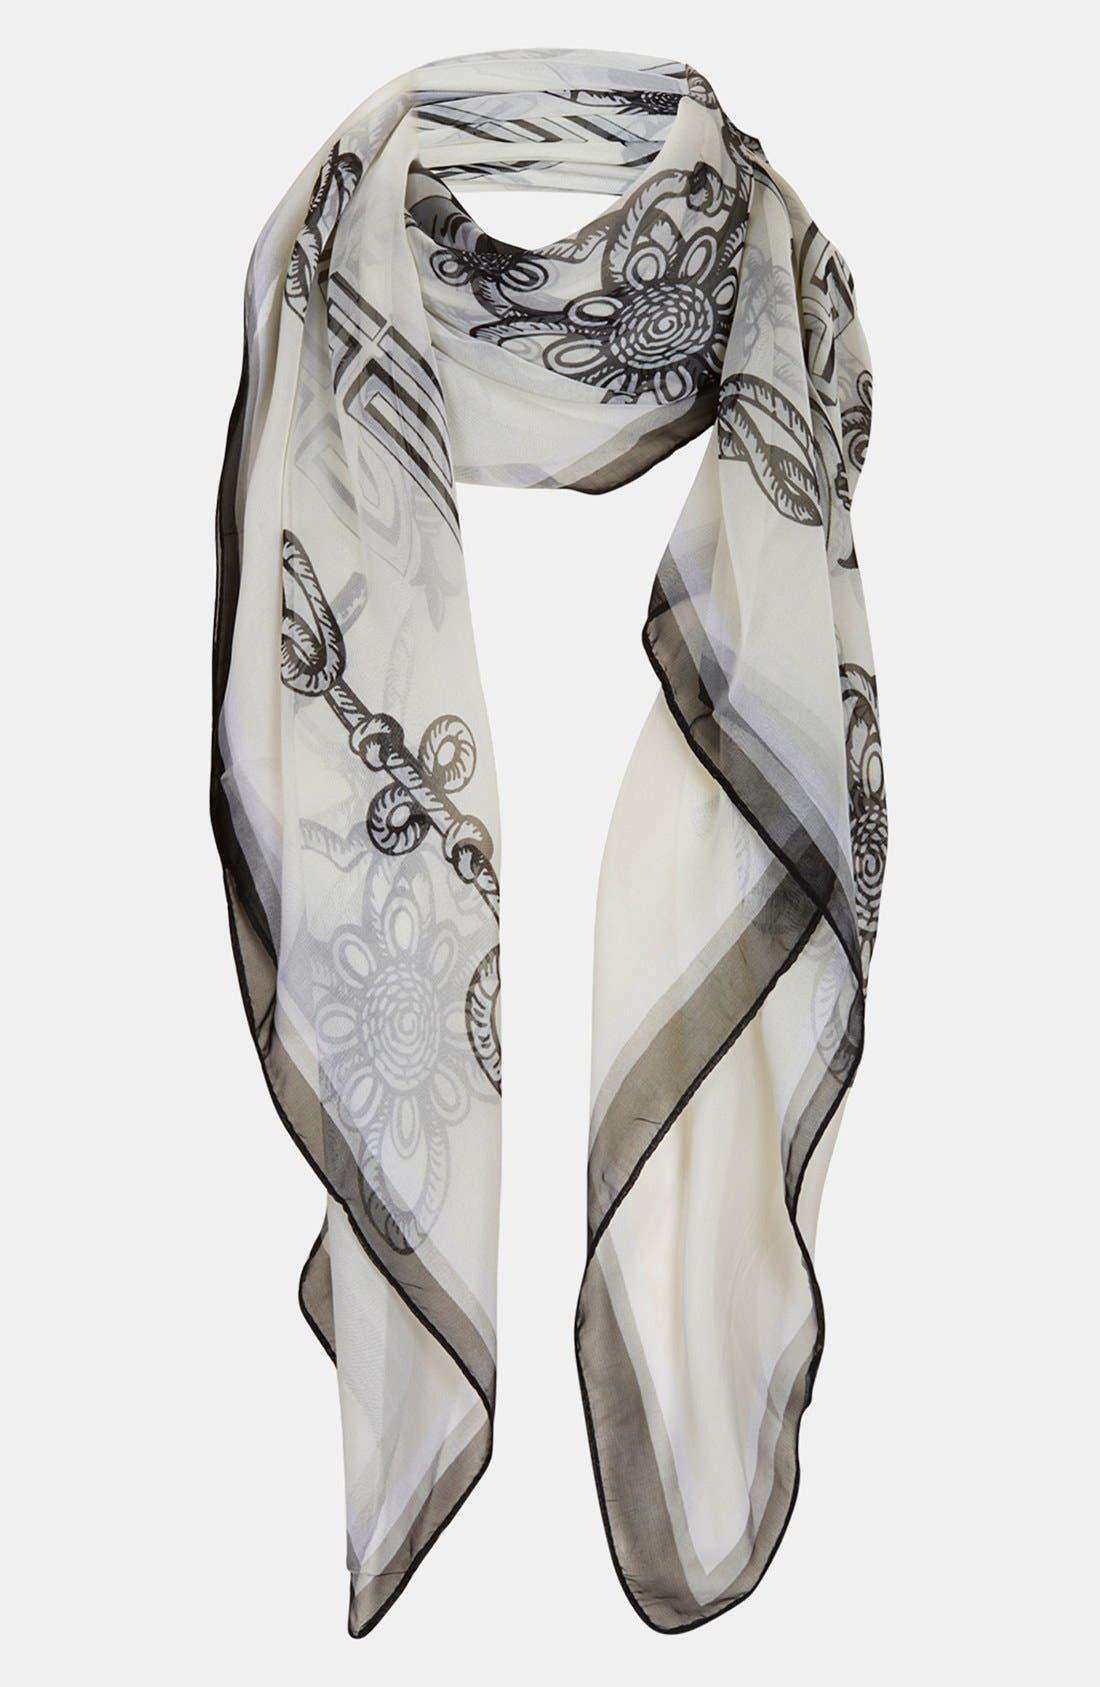 Alternate Image 1 Selected - Topshop Horse Print Chiffon Square Scarf